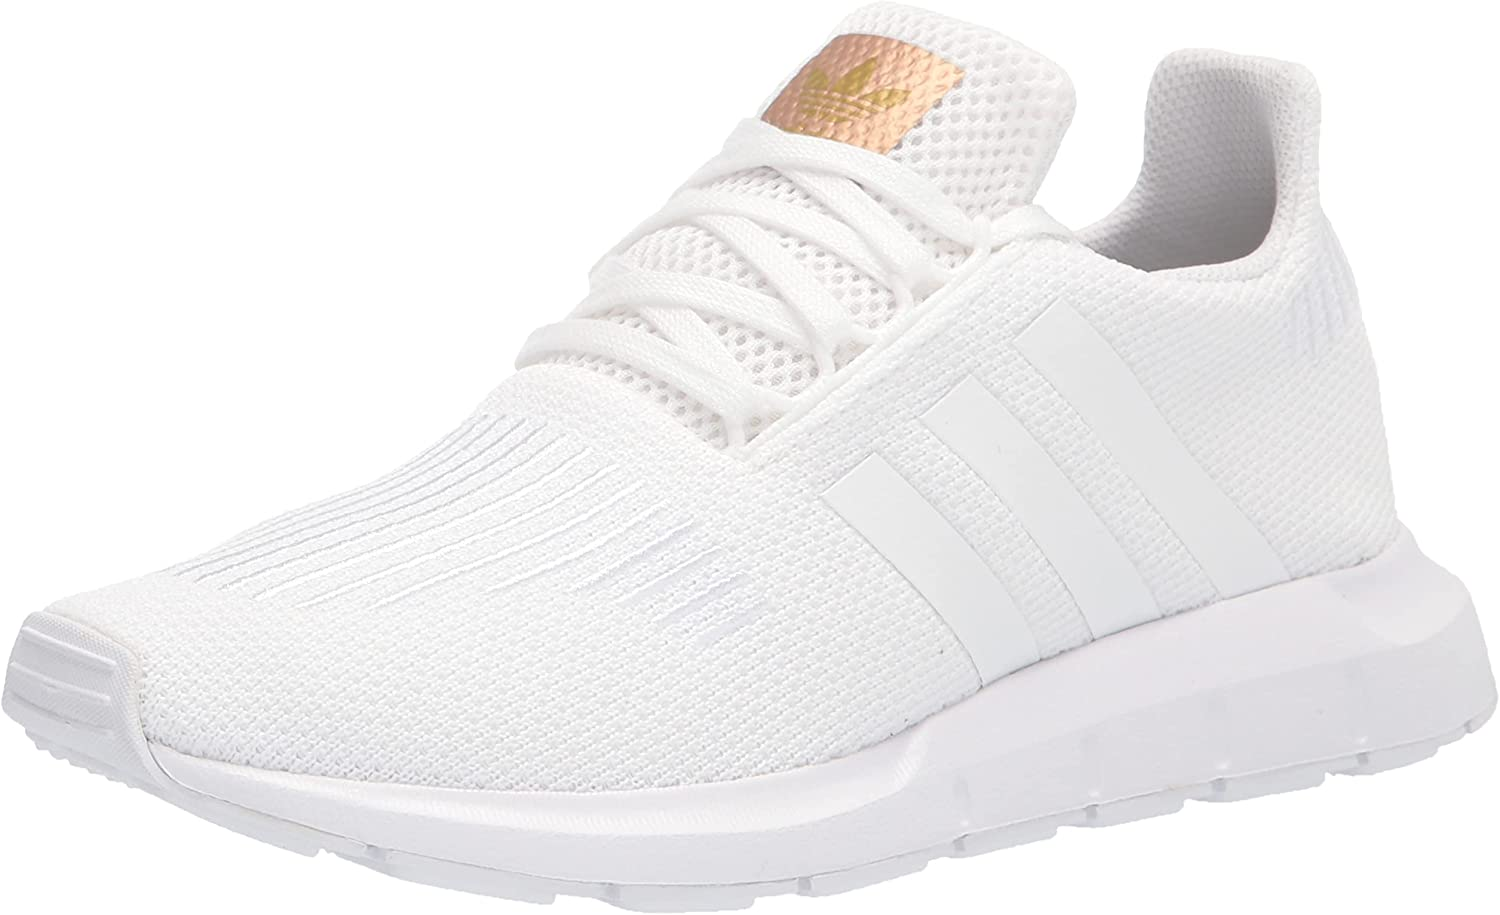 adidas Originals Women's Shoe Swift Running Fees Clearance SALE! Limited time! free